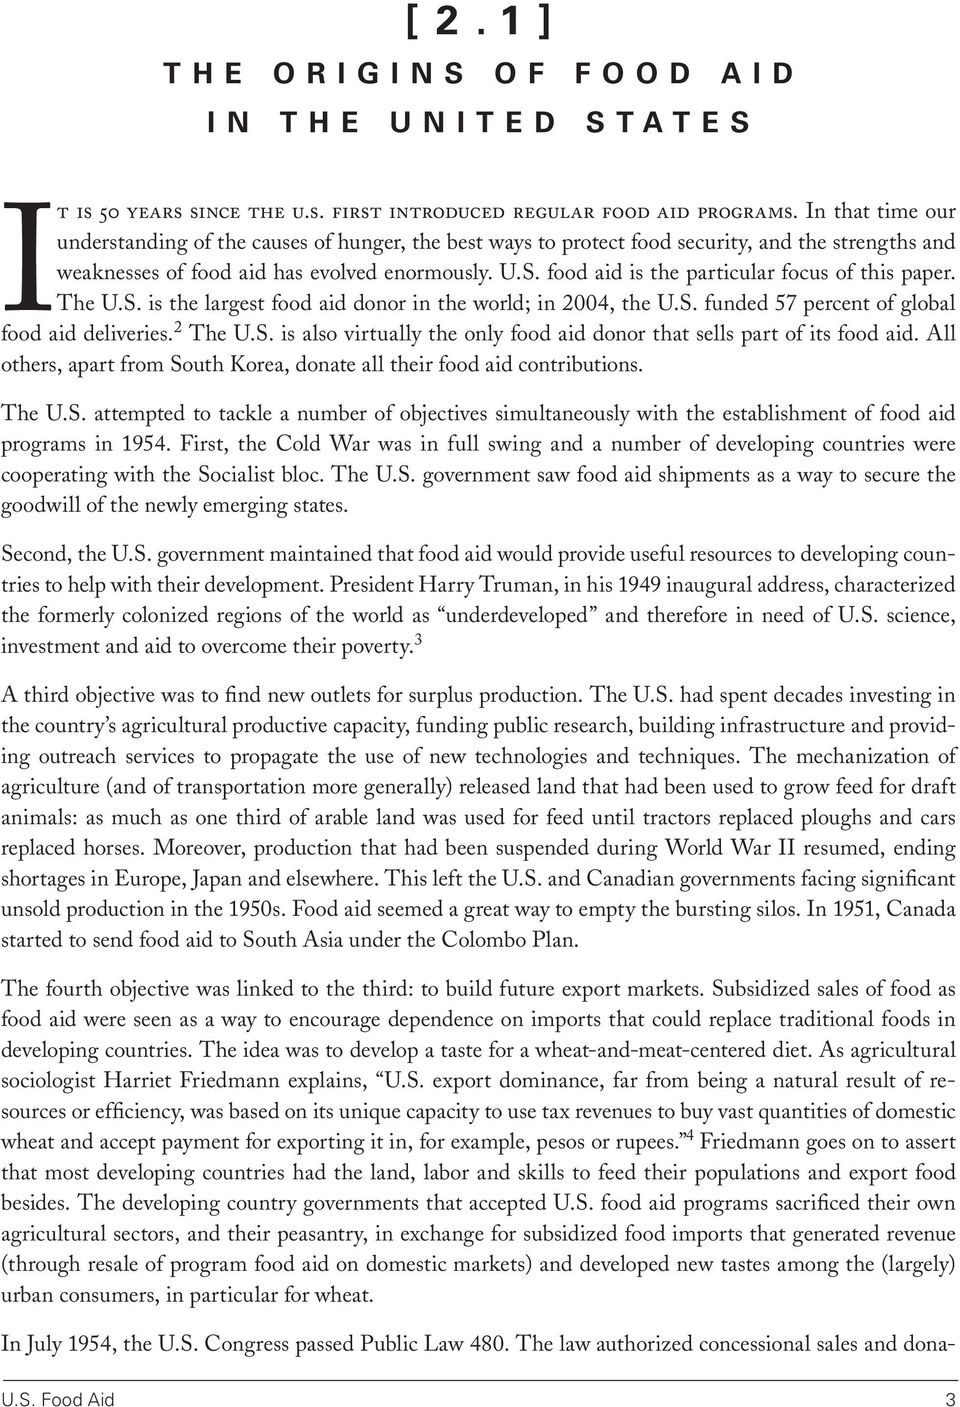 food aid is the particular focus of this paper. The U.S. is the largest food aid donor in the world; in 2004, the U.S. funded 57 percent of global food aid deliveries. 2 The U.S. is also virtually the only food aid donor that sells part of its food aid.